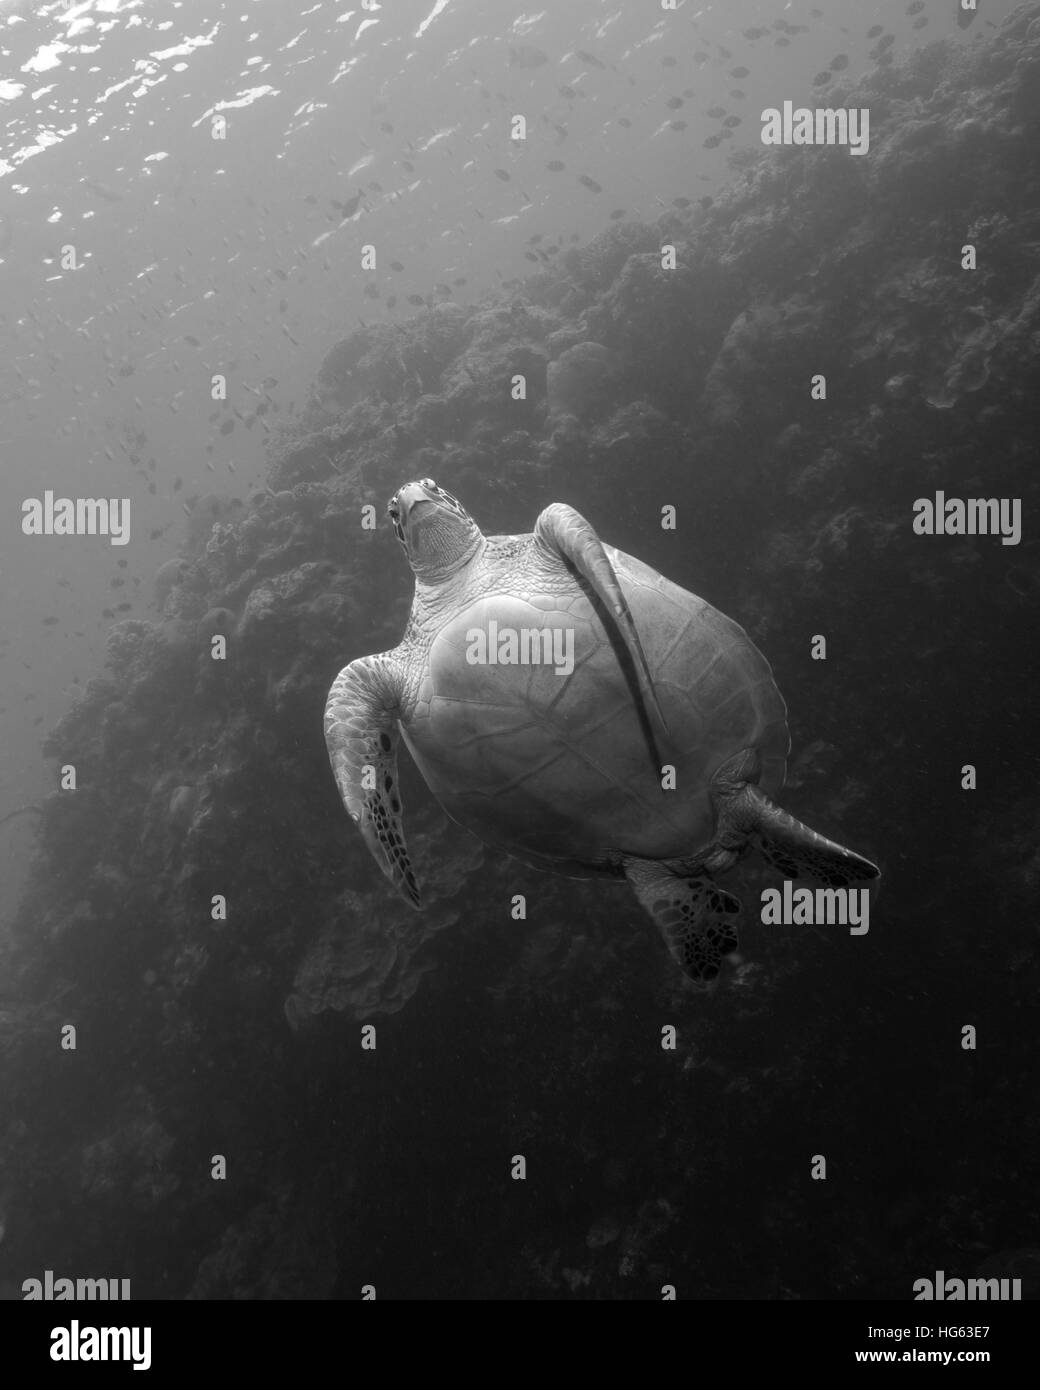 A green sea turtle at the Bunaken National Marine Park in Indonesia. - Stock Image